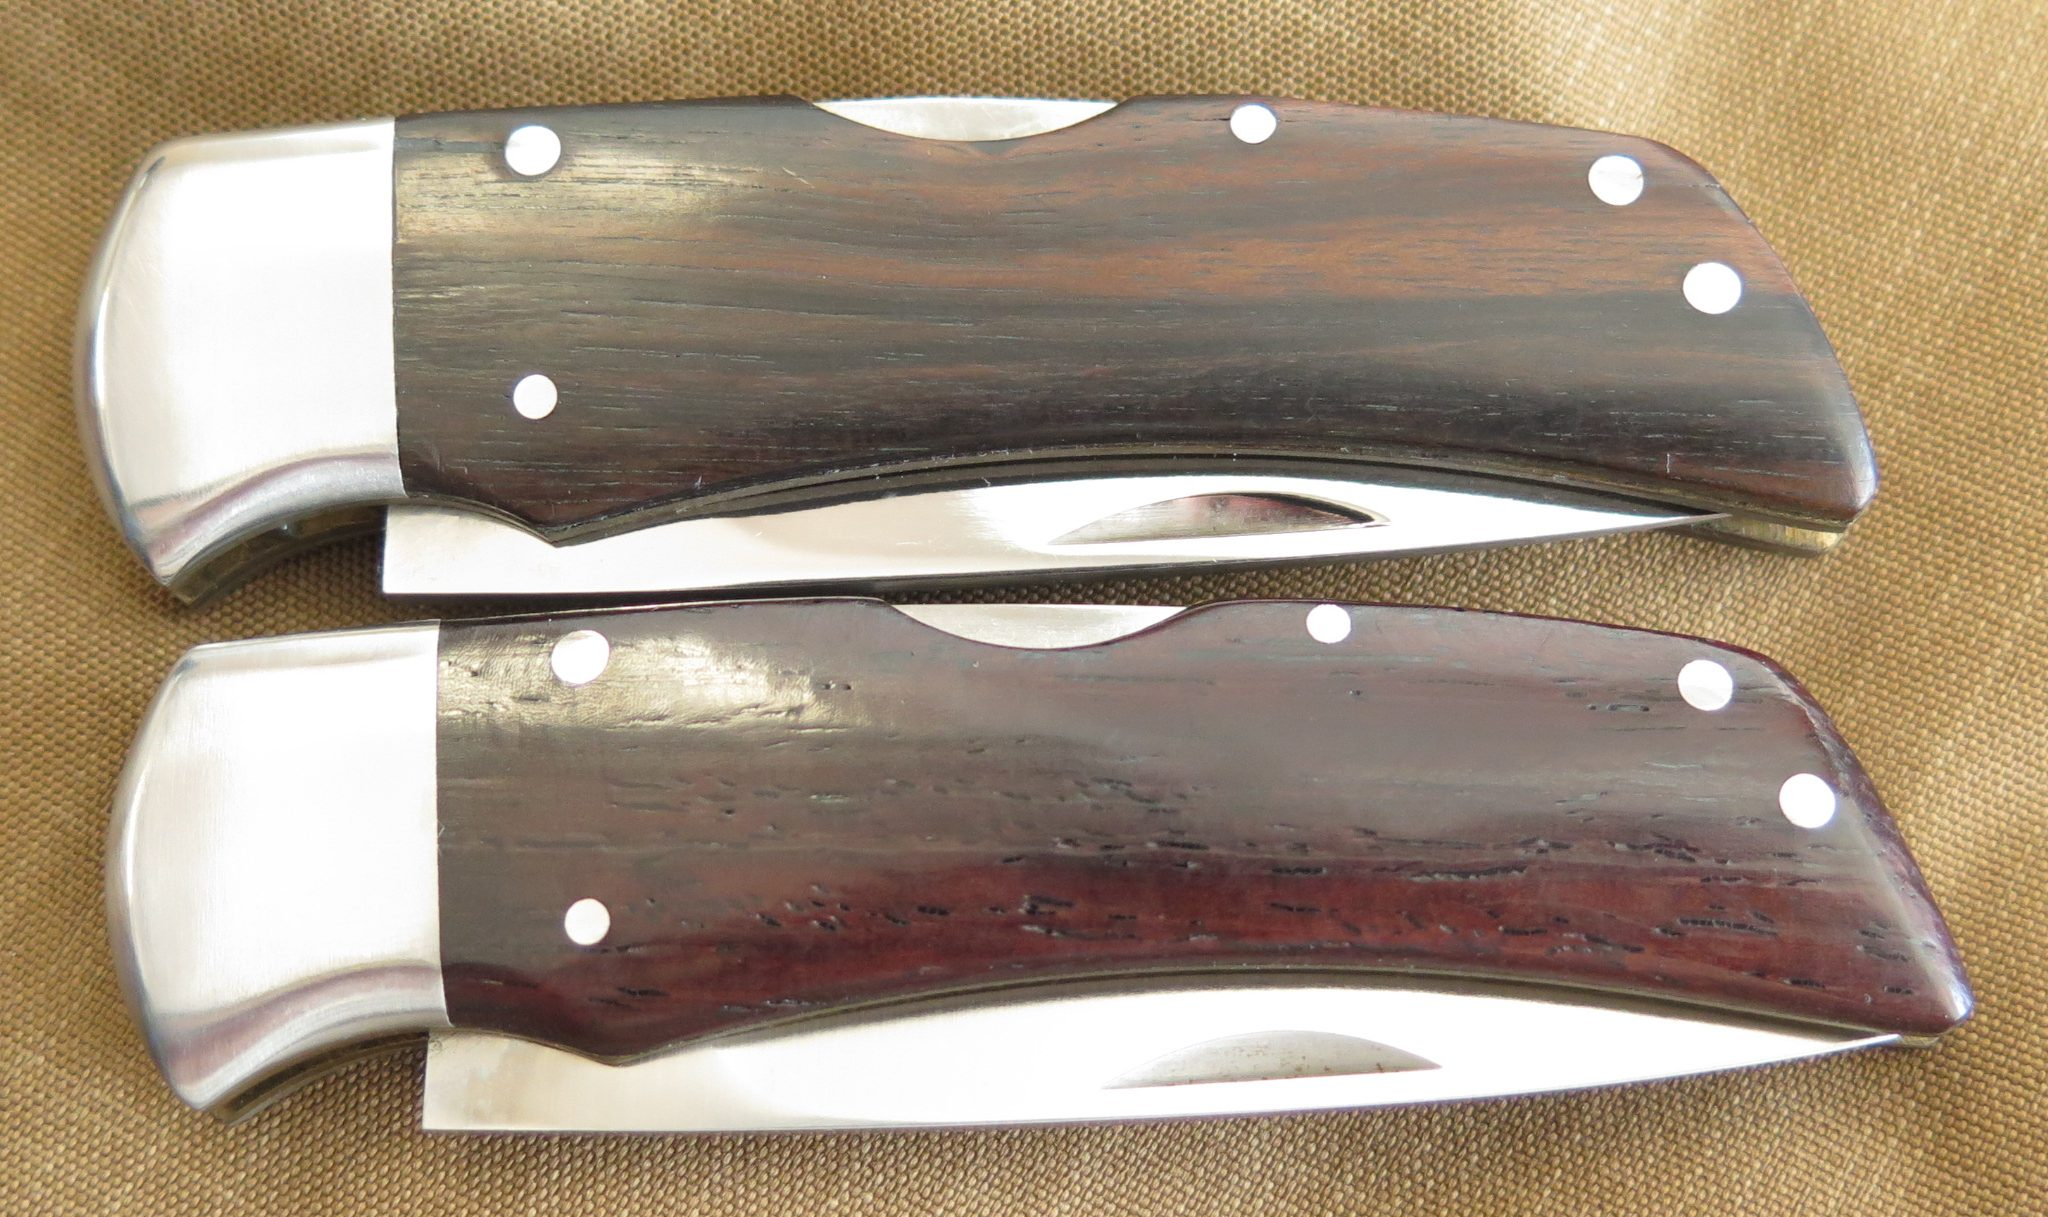 Gerber Ebony Folding Hunter I and Rosewood G. Sakai